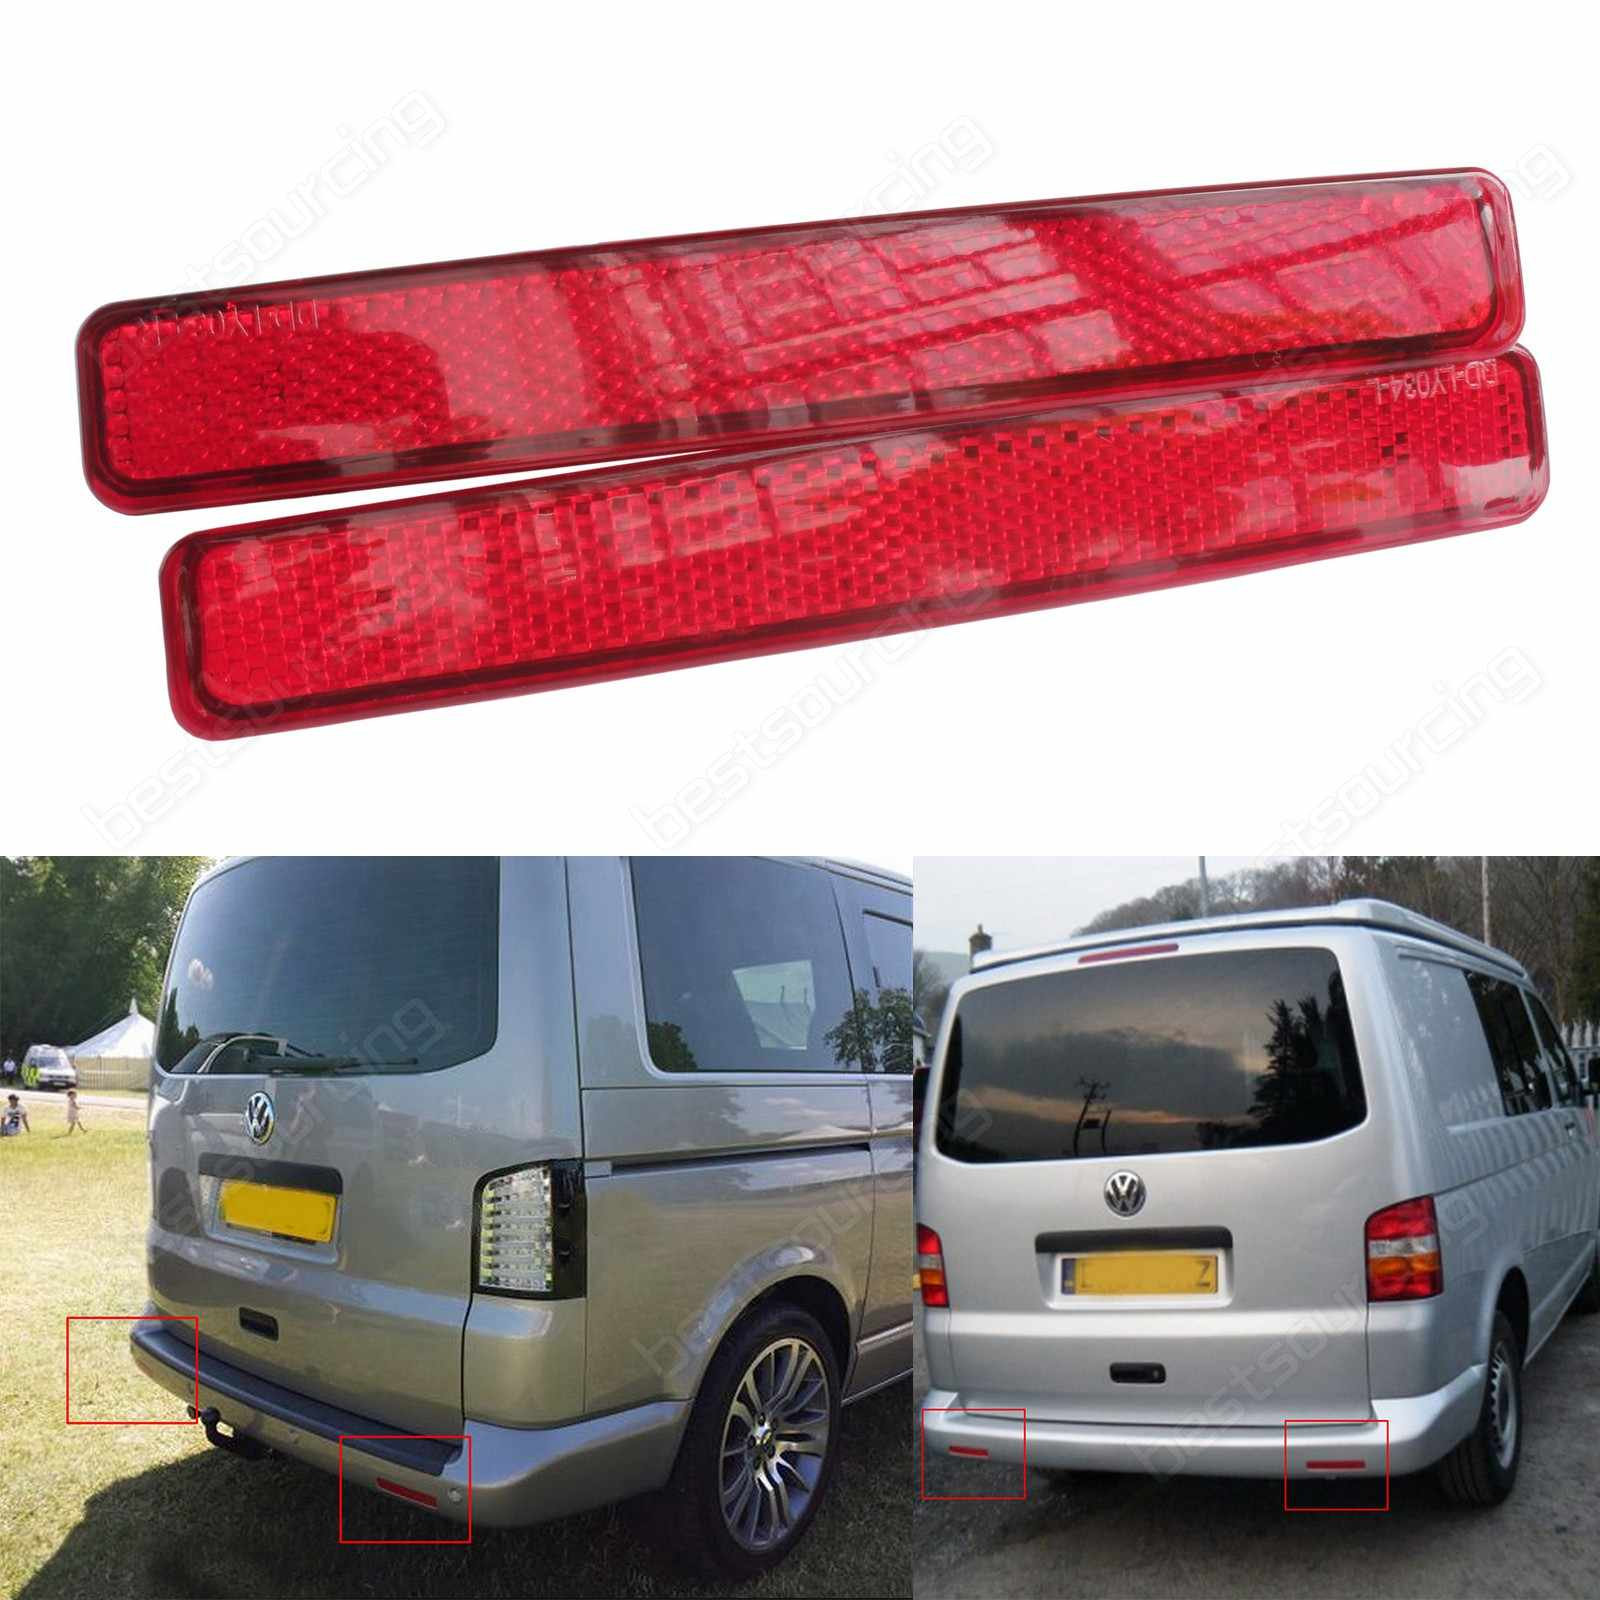 ANGRONG 2x Voor VW Transporter T5 2003-11 Multivan Red Rear Bumper Reflector Licht Links Rechts